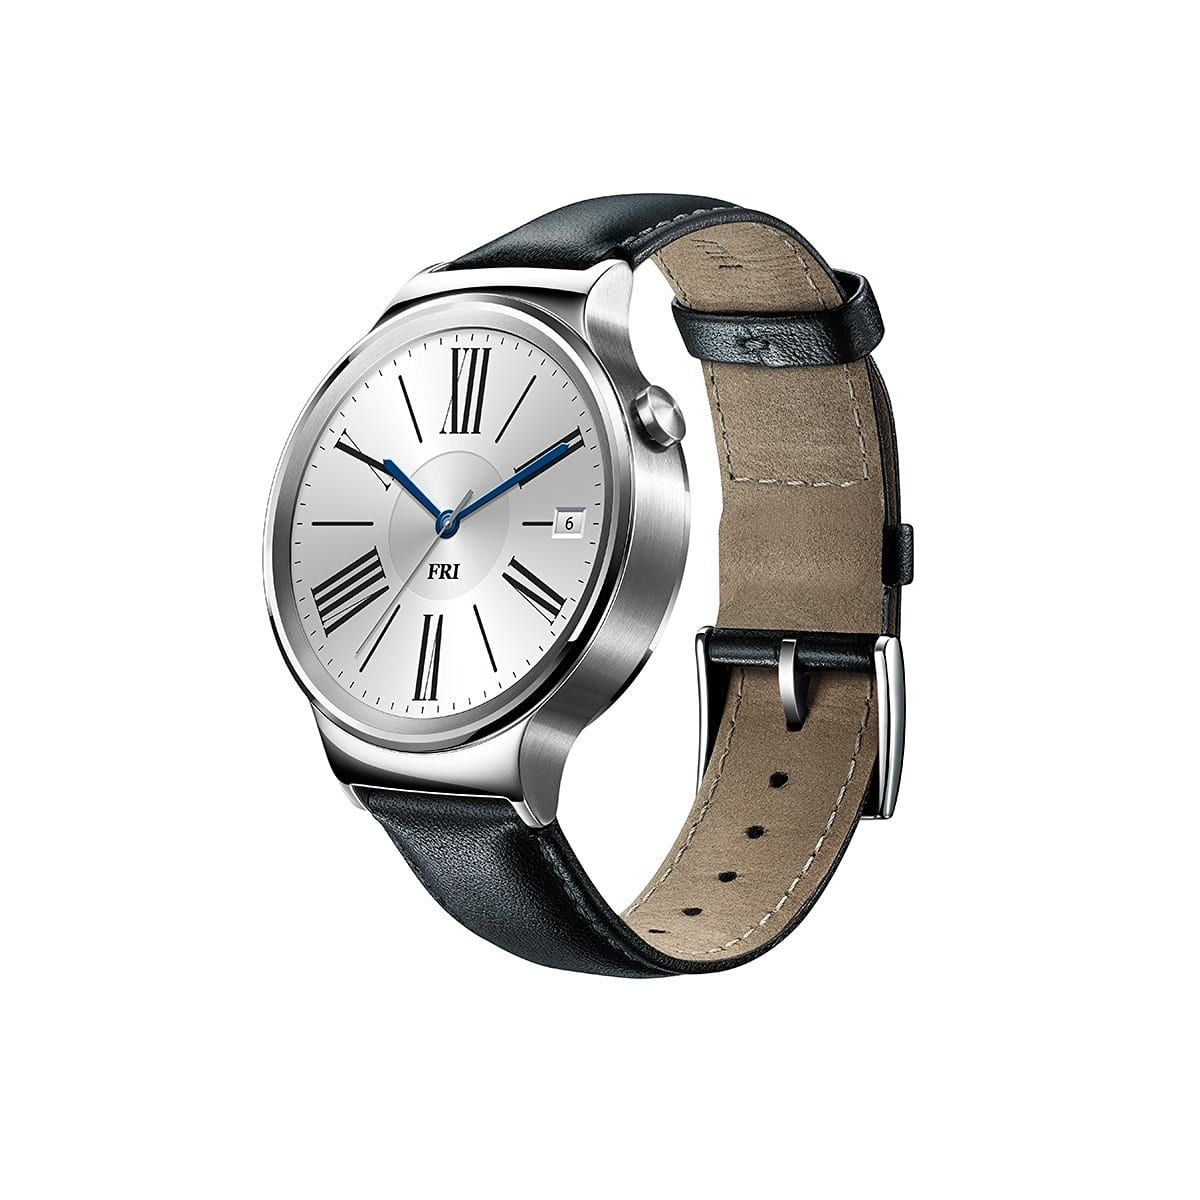 Huawei Smartwatch 42mm Stainless Steel w/ Black Leather Band (Refurbished) $154.99 & More + Free Shipping @ Newegg